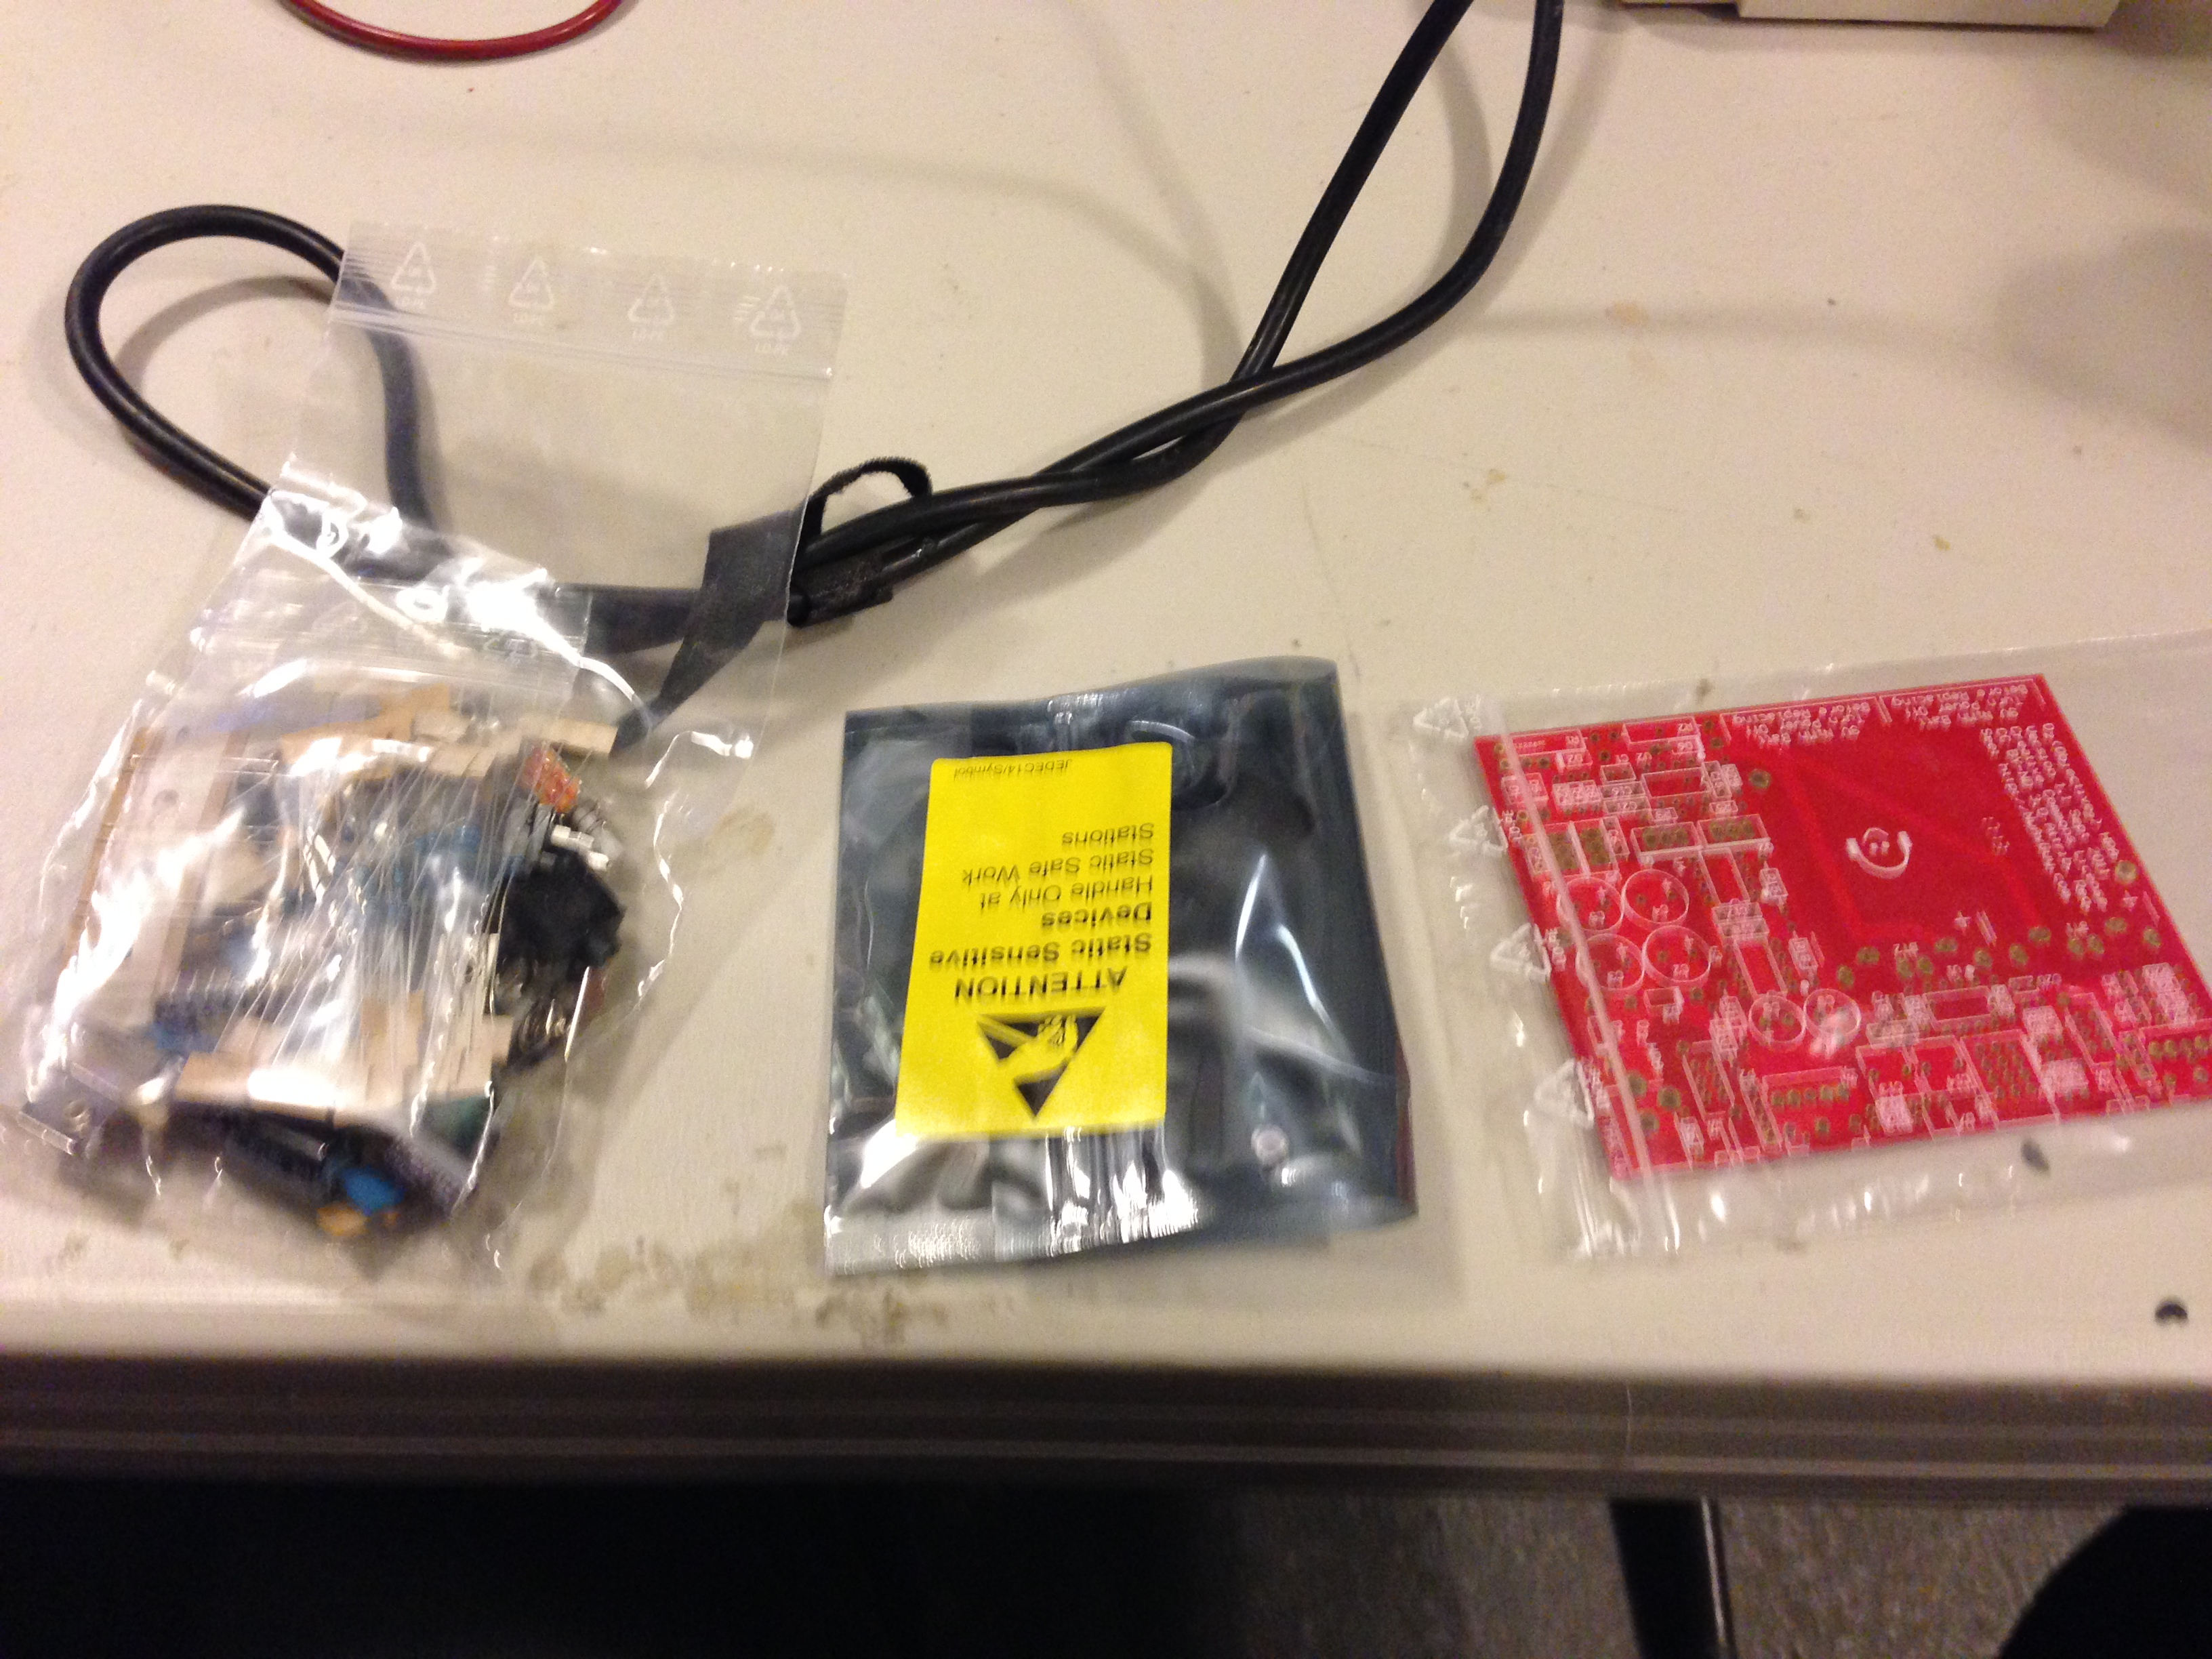 O2 Headphone Amplifier - Part Bags